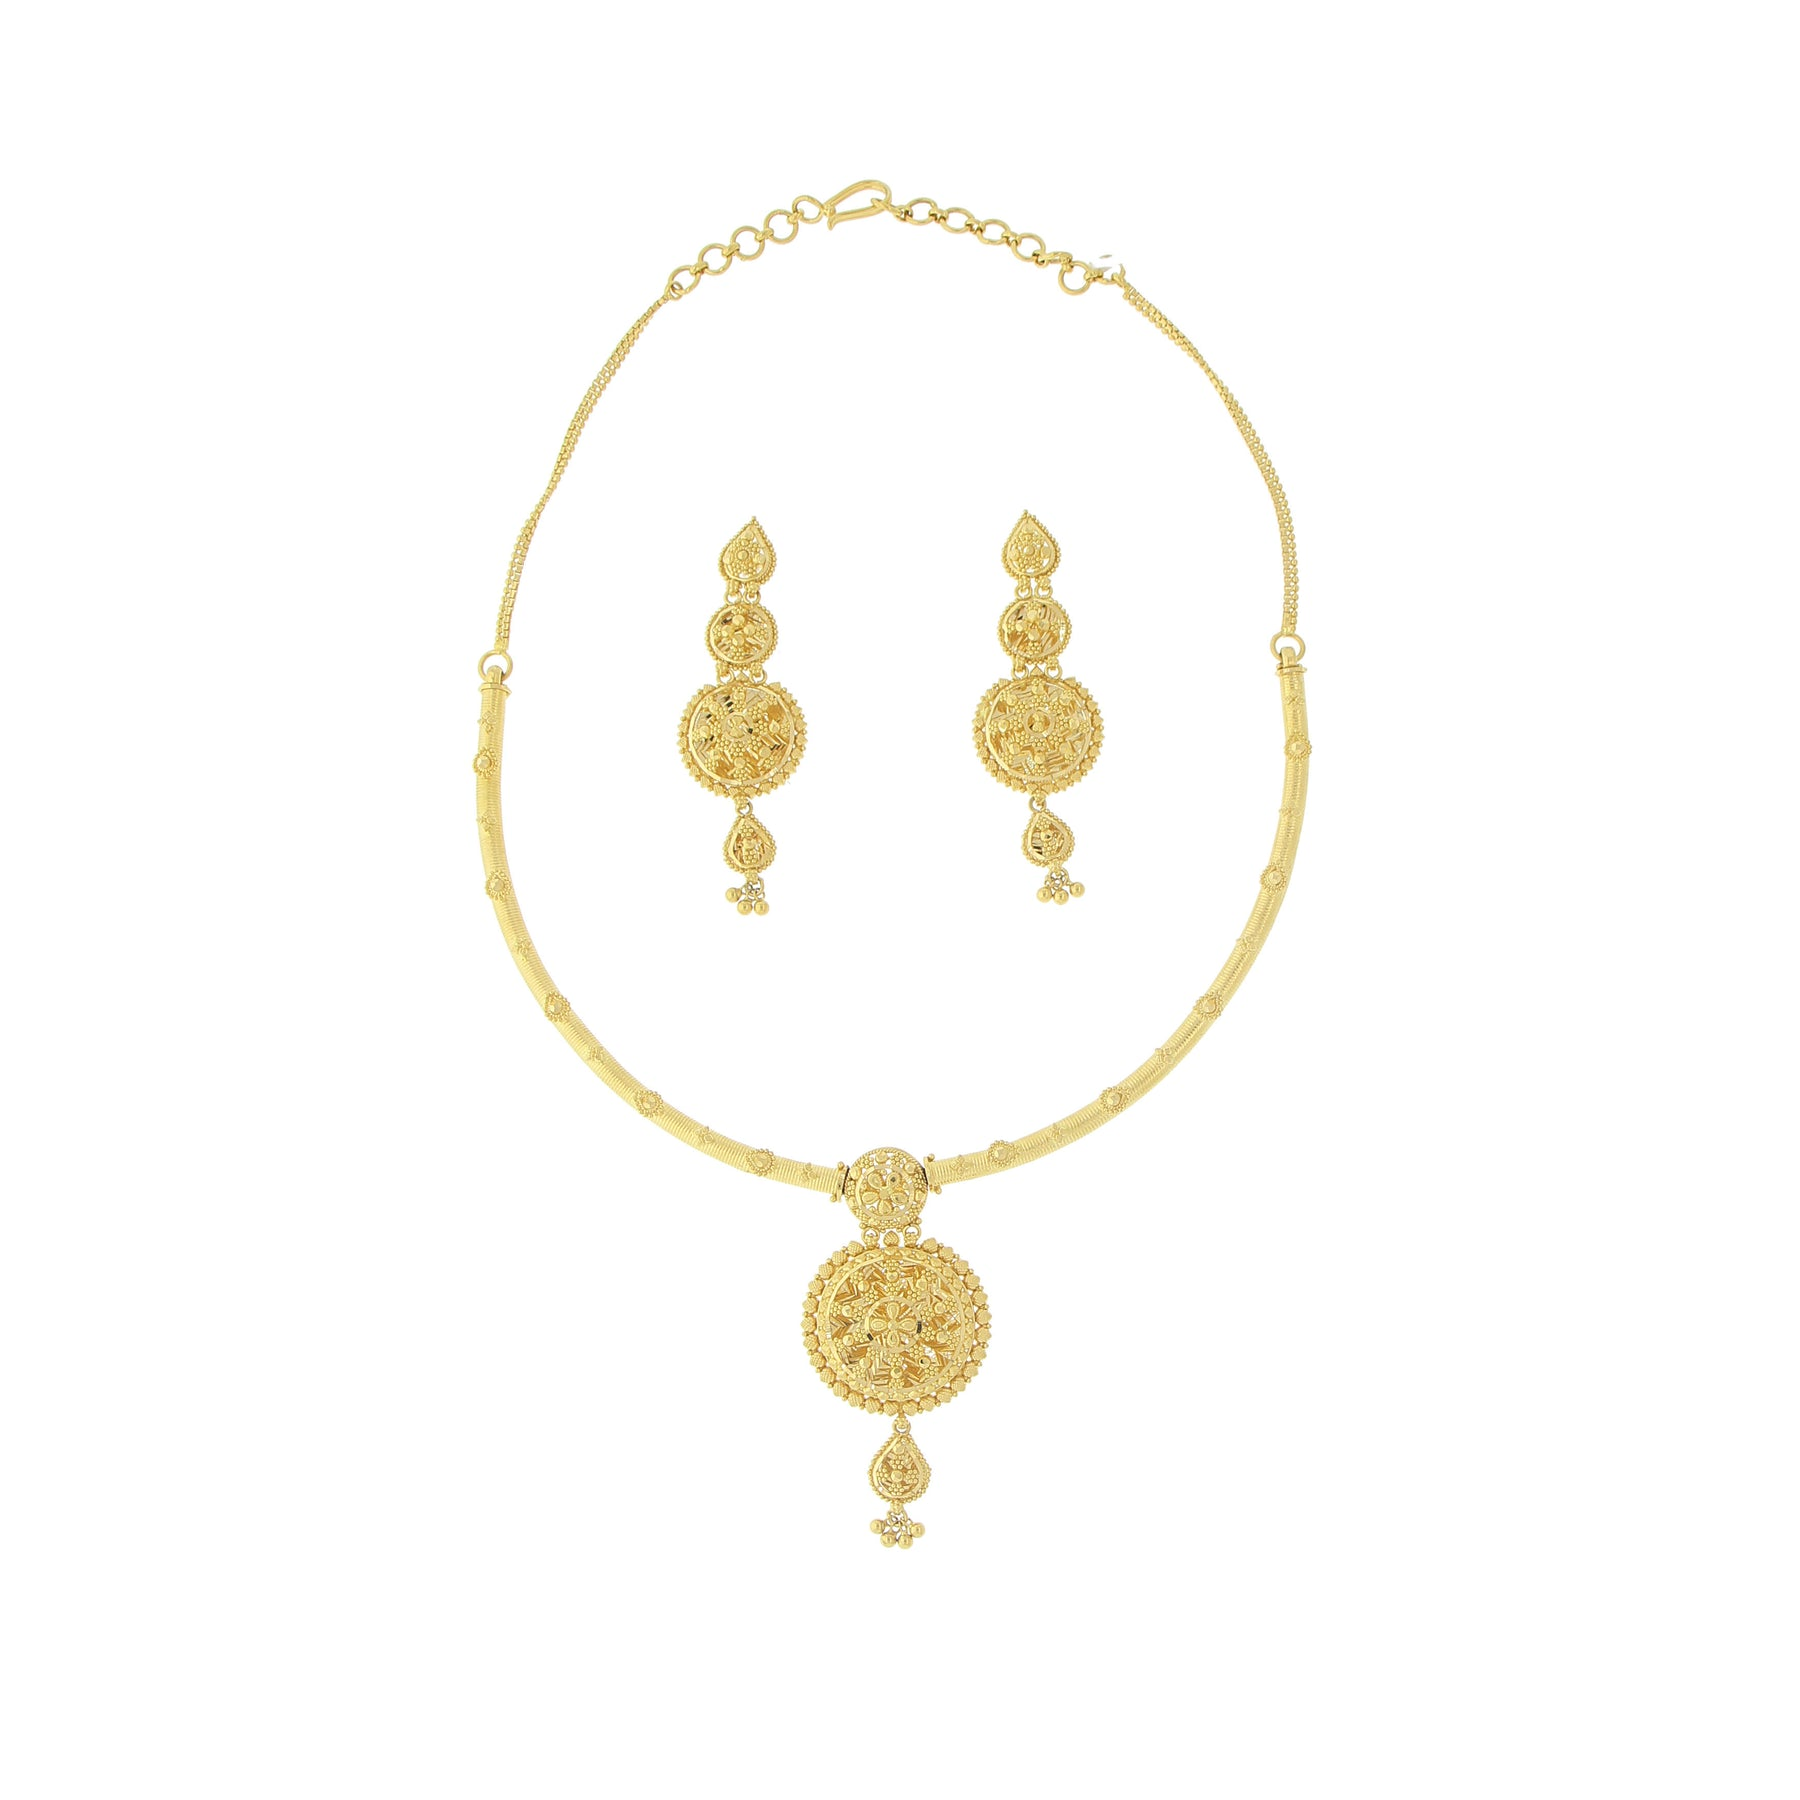 gold yellow imageid costco recipename imageservice byzantine necklace profileid necklaces